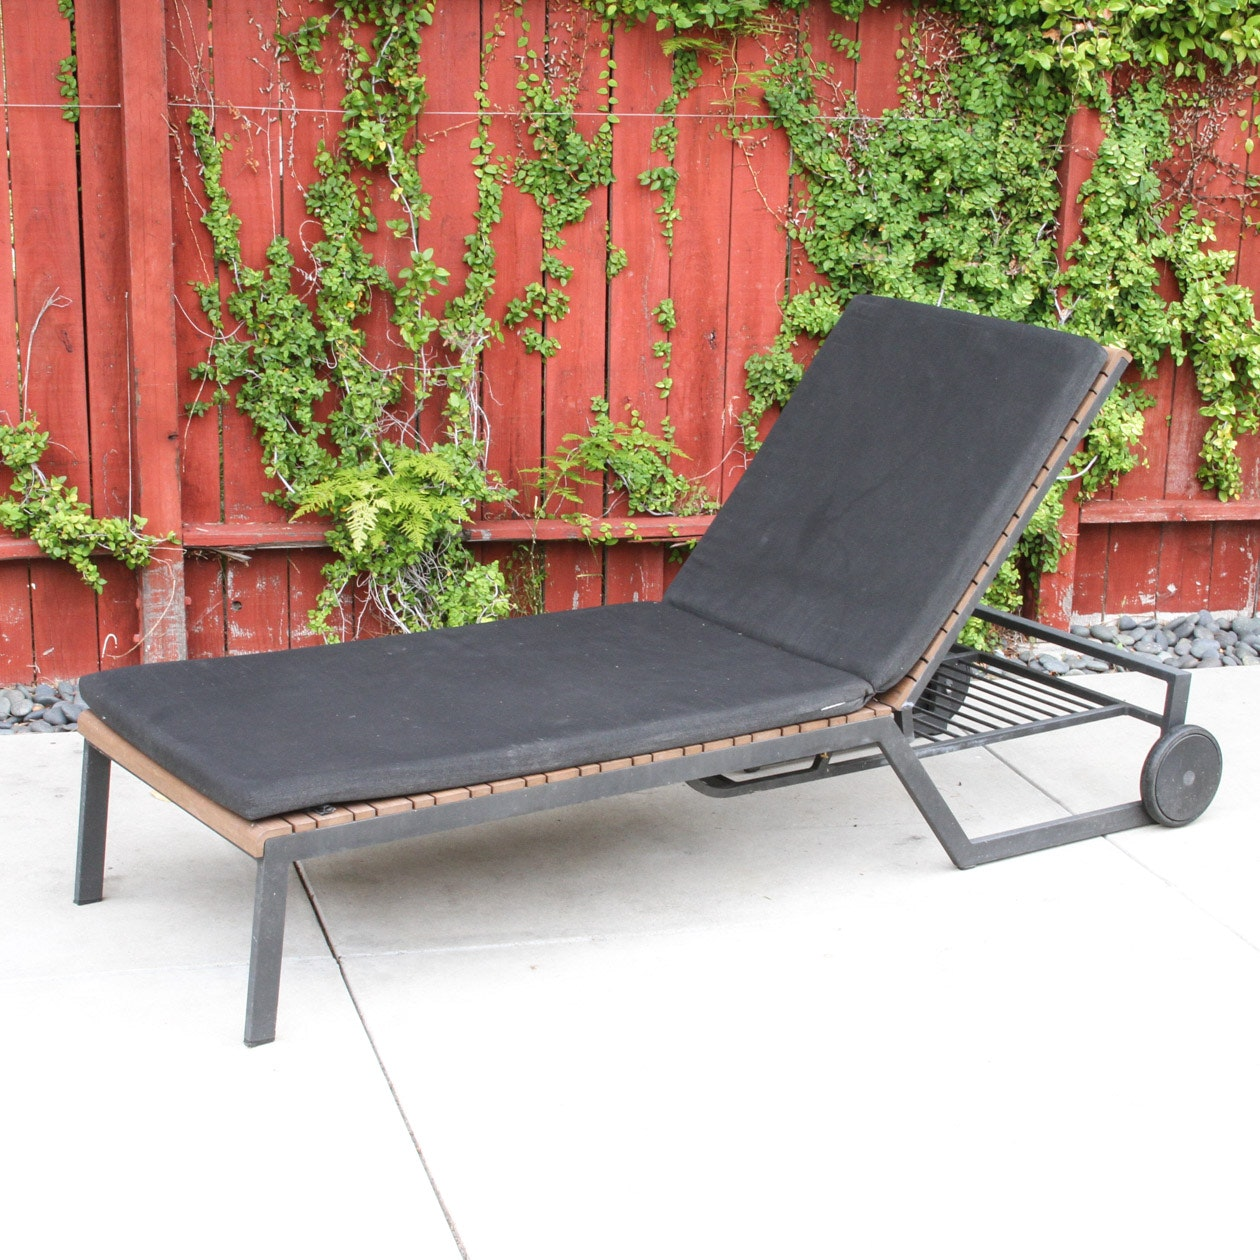 Crate and Barrel Patio Chaise Lounge